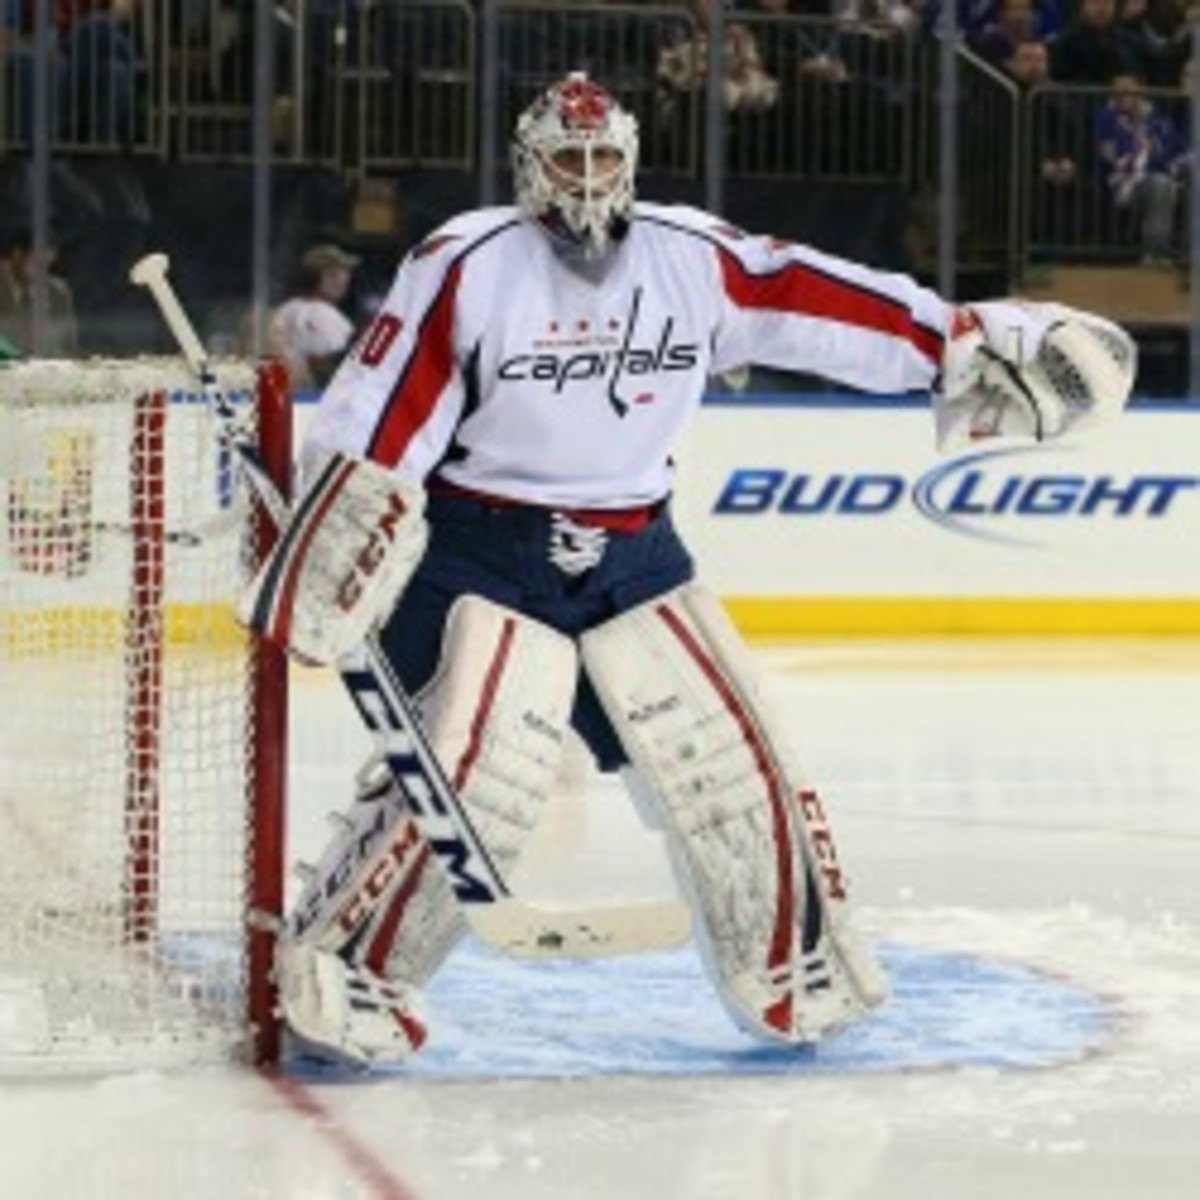 The Capitals signed goaltender Braden Holtby to a two-year extension. (Bruce Bennett/Getty Images)